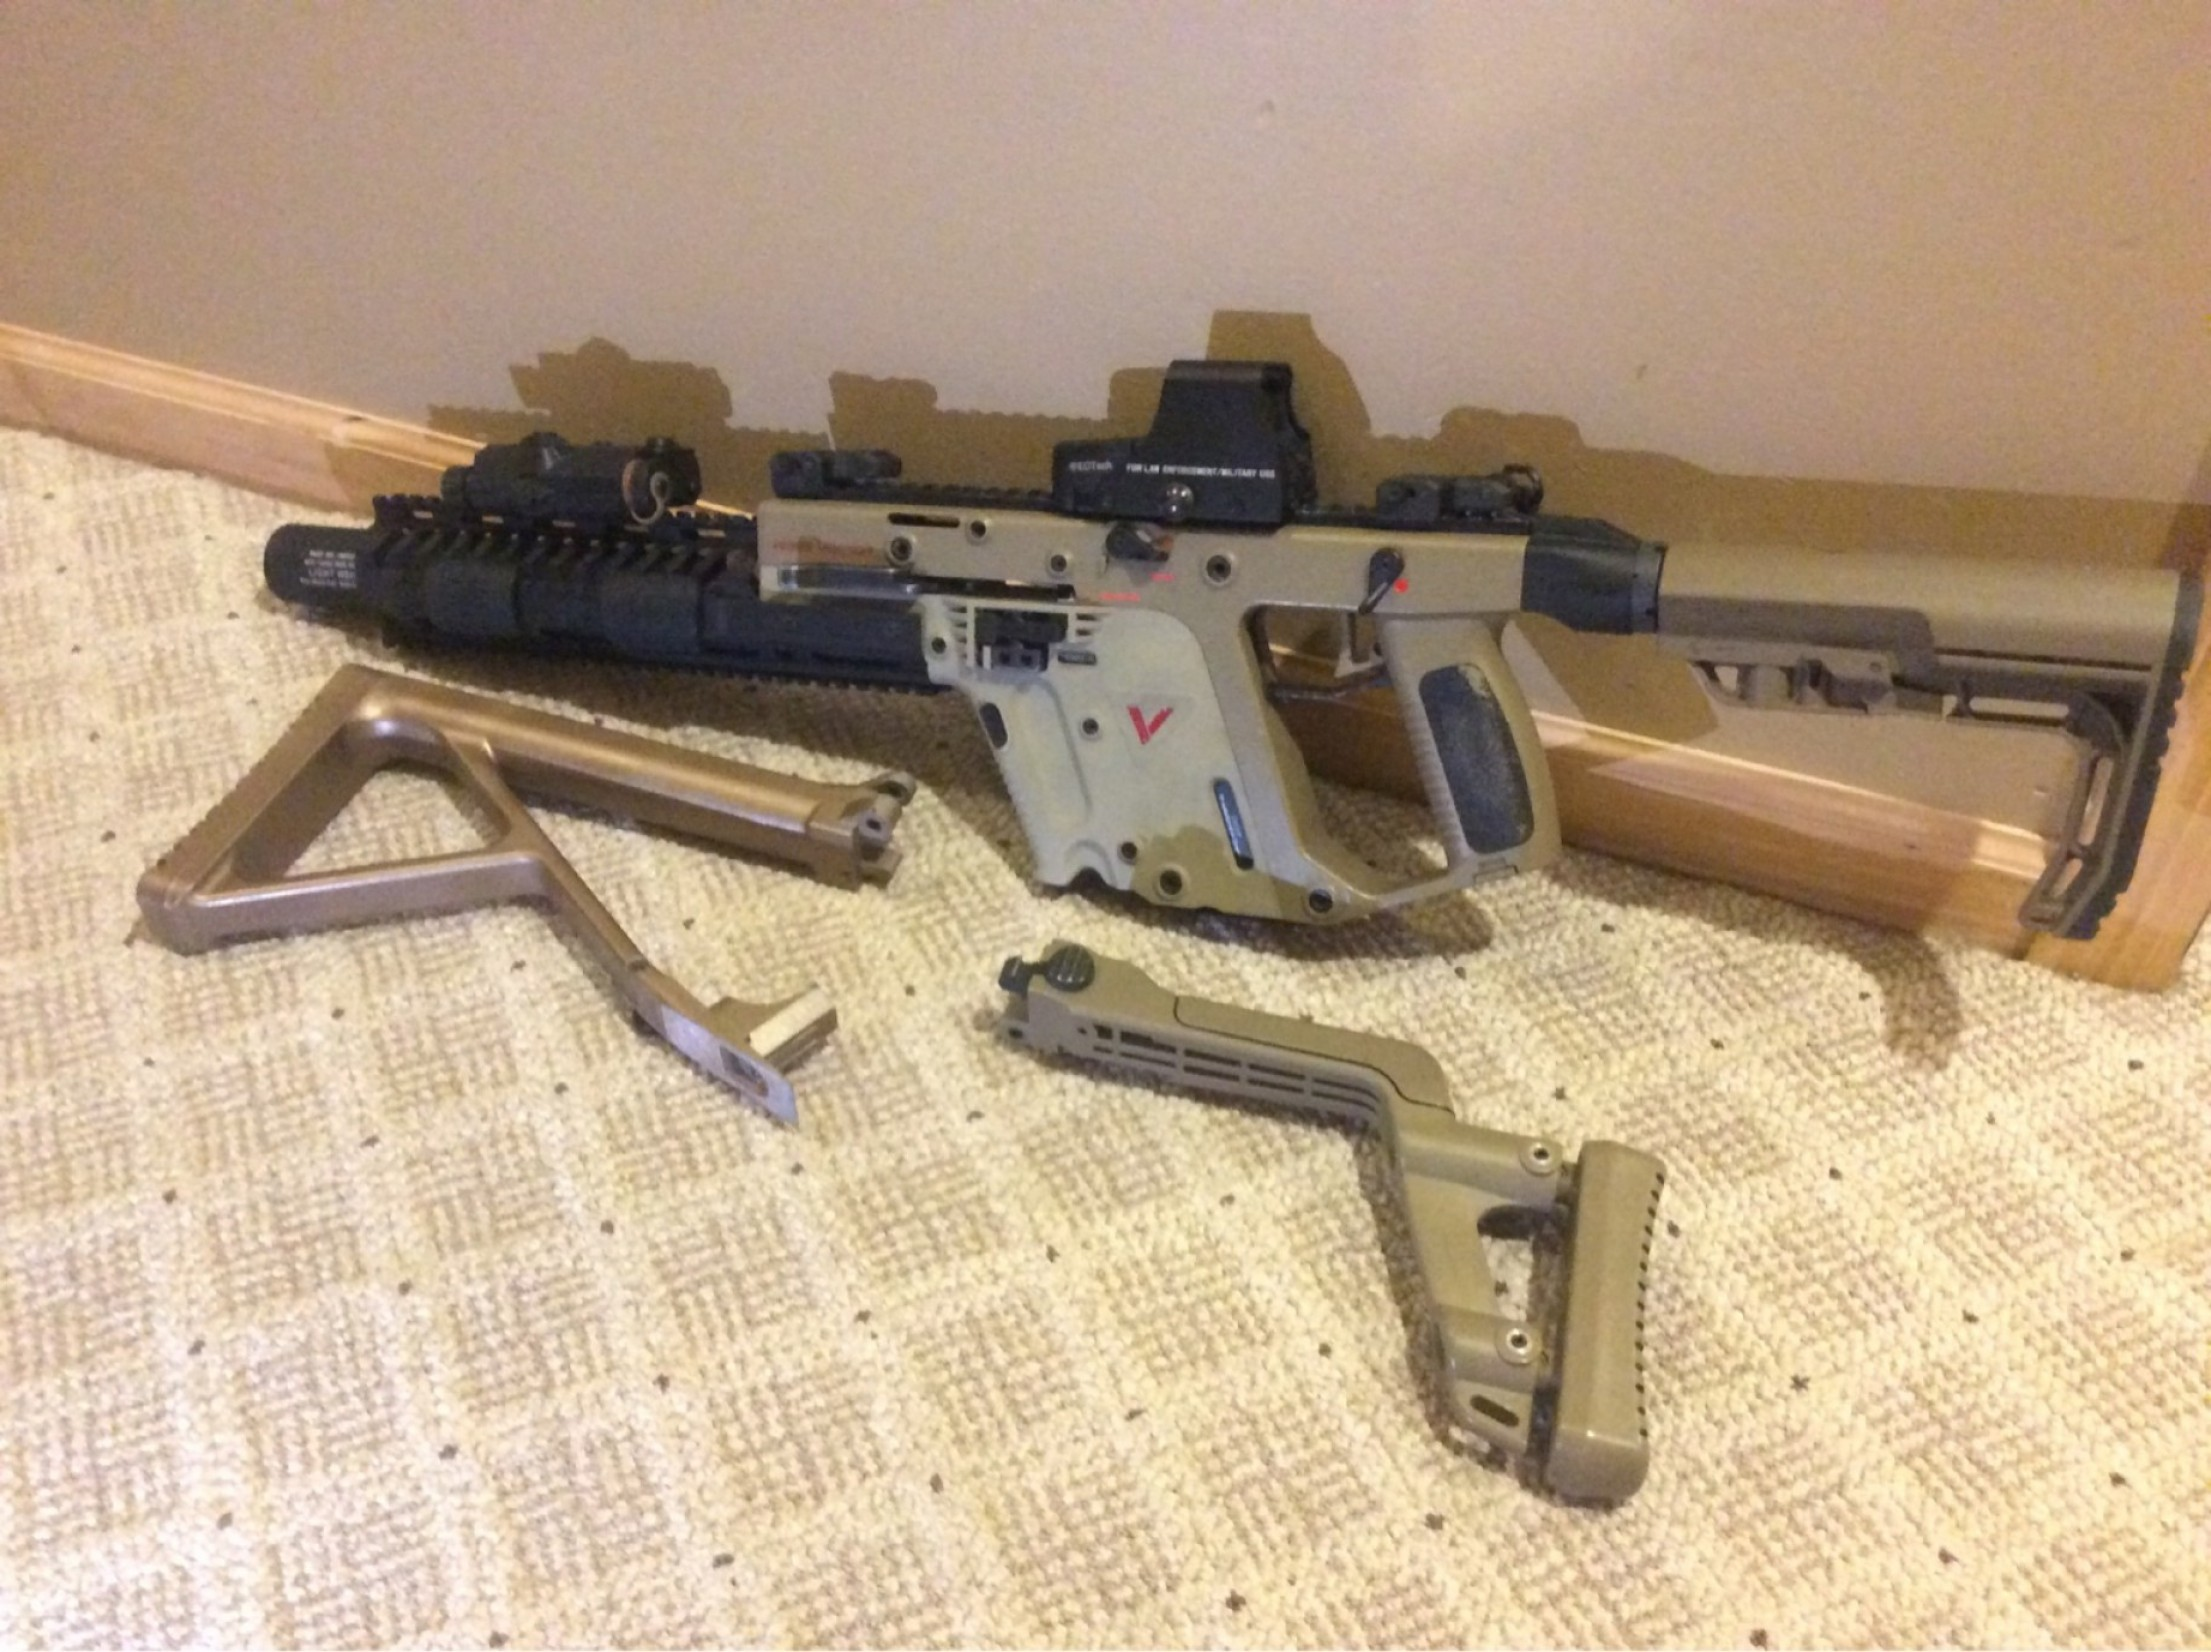 Airsoft KWA KRISS Vector: Wtt Kwa Kriss Vector Gbb Smg With Mags For Vfc Sr